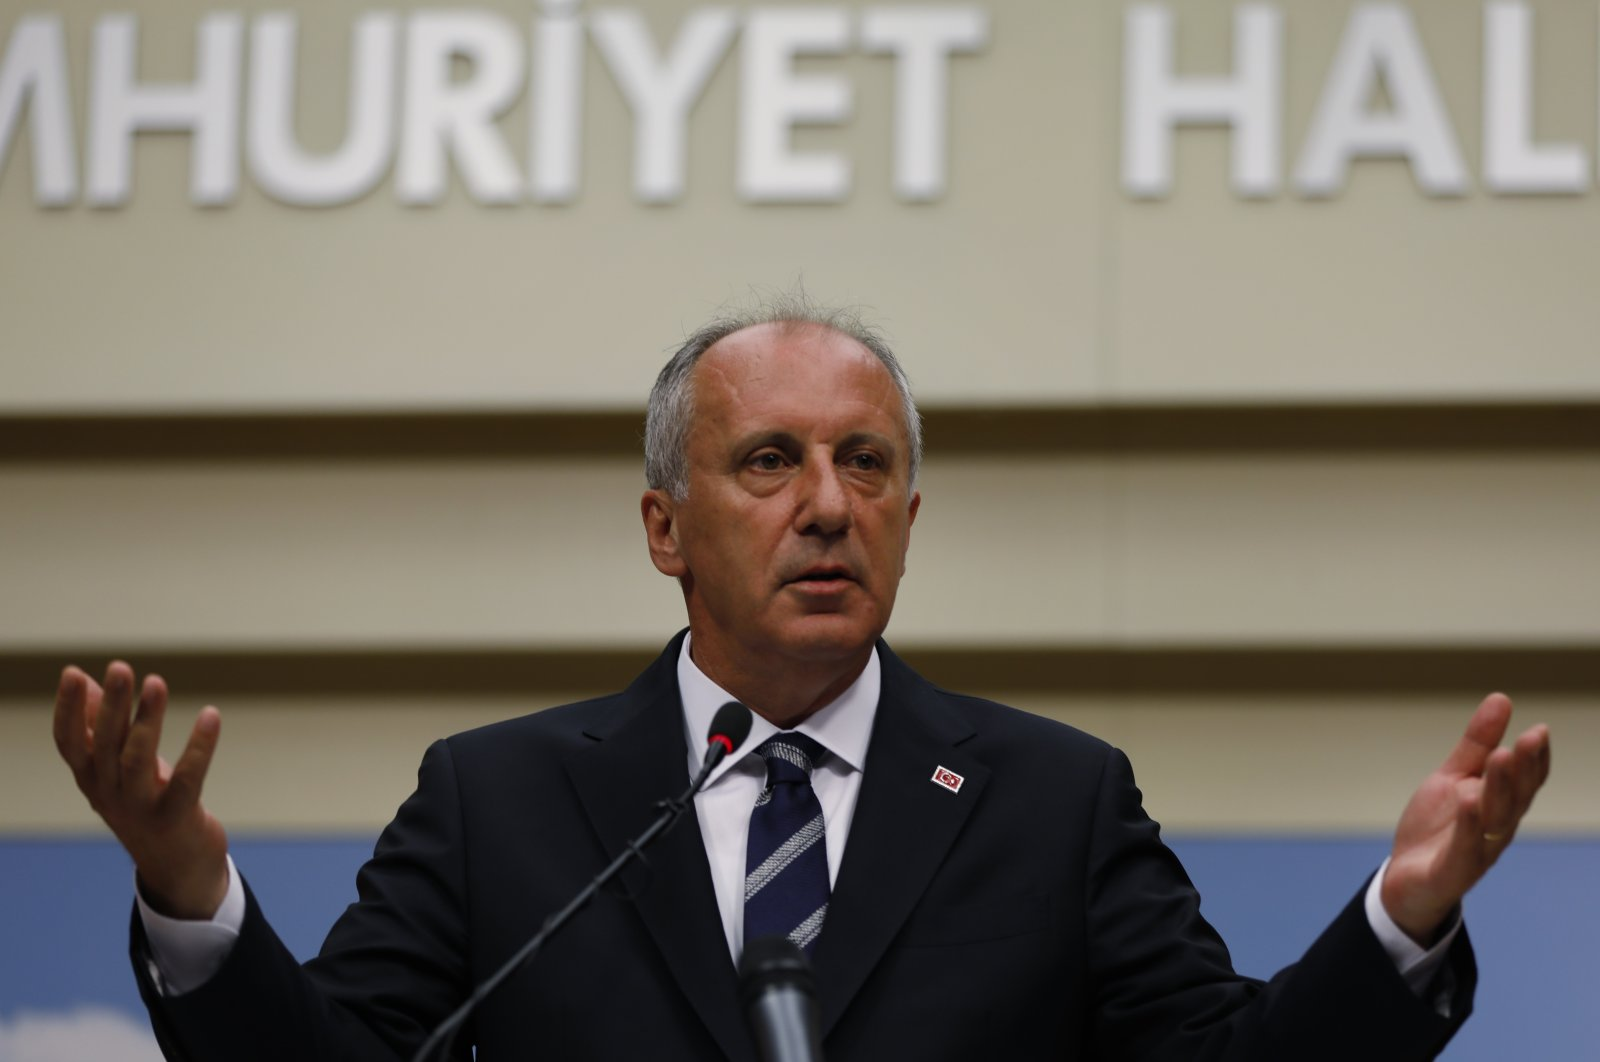 A day after the elections, Muharrem Ince, the candidate of Turkey's main opposition Republican People's Party (CHP), gestures as he speaks at a news conference in the capital Ankara, Turkey, June 25, 2018. (AP Photo)